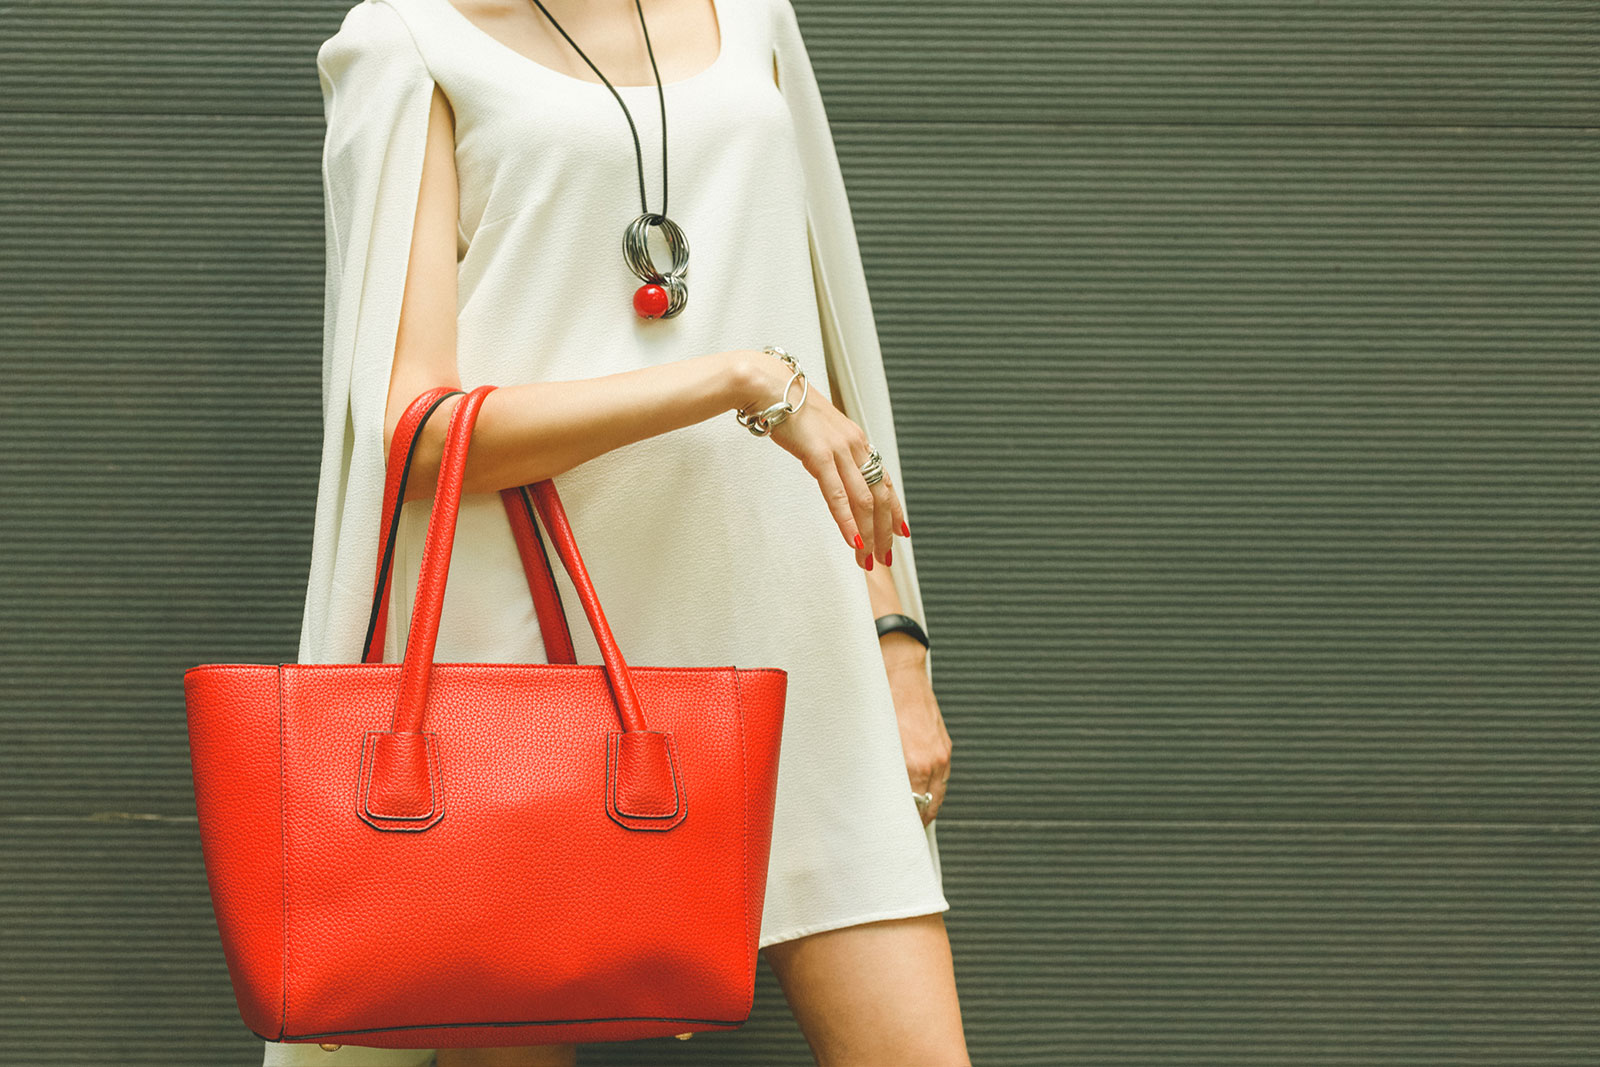 Finding Quality Leather Handbags | LoveToKnow